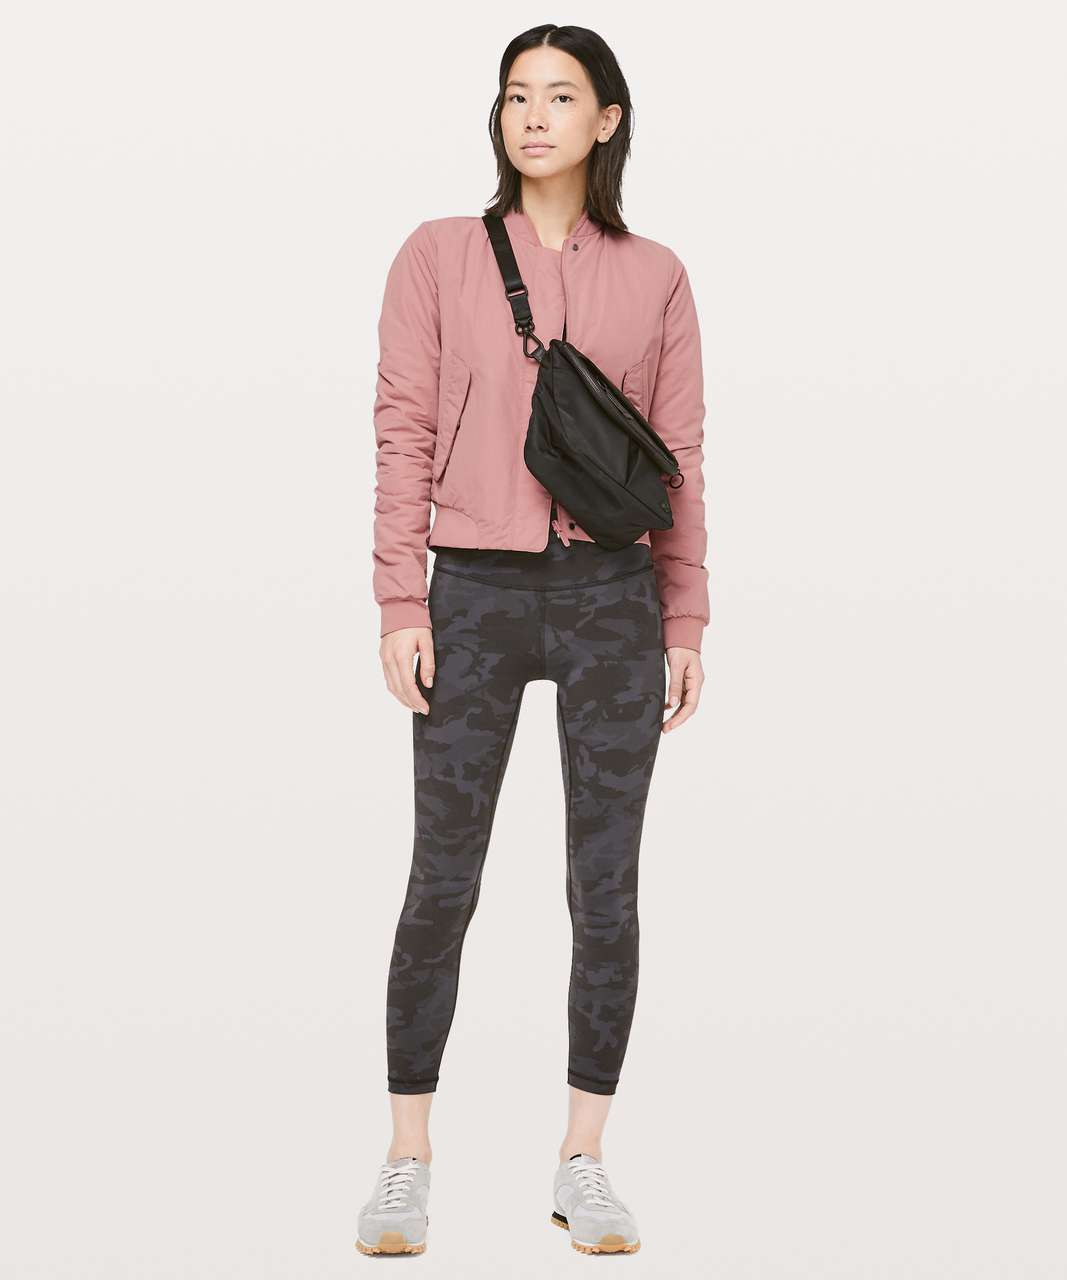 Lululemon Warm Two Ways Bomber - Copper Coil